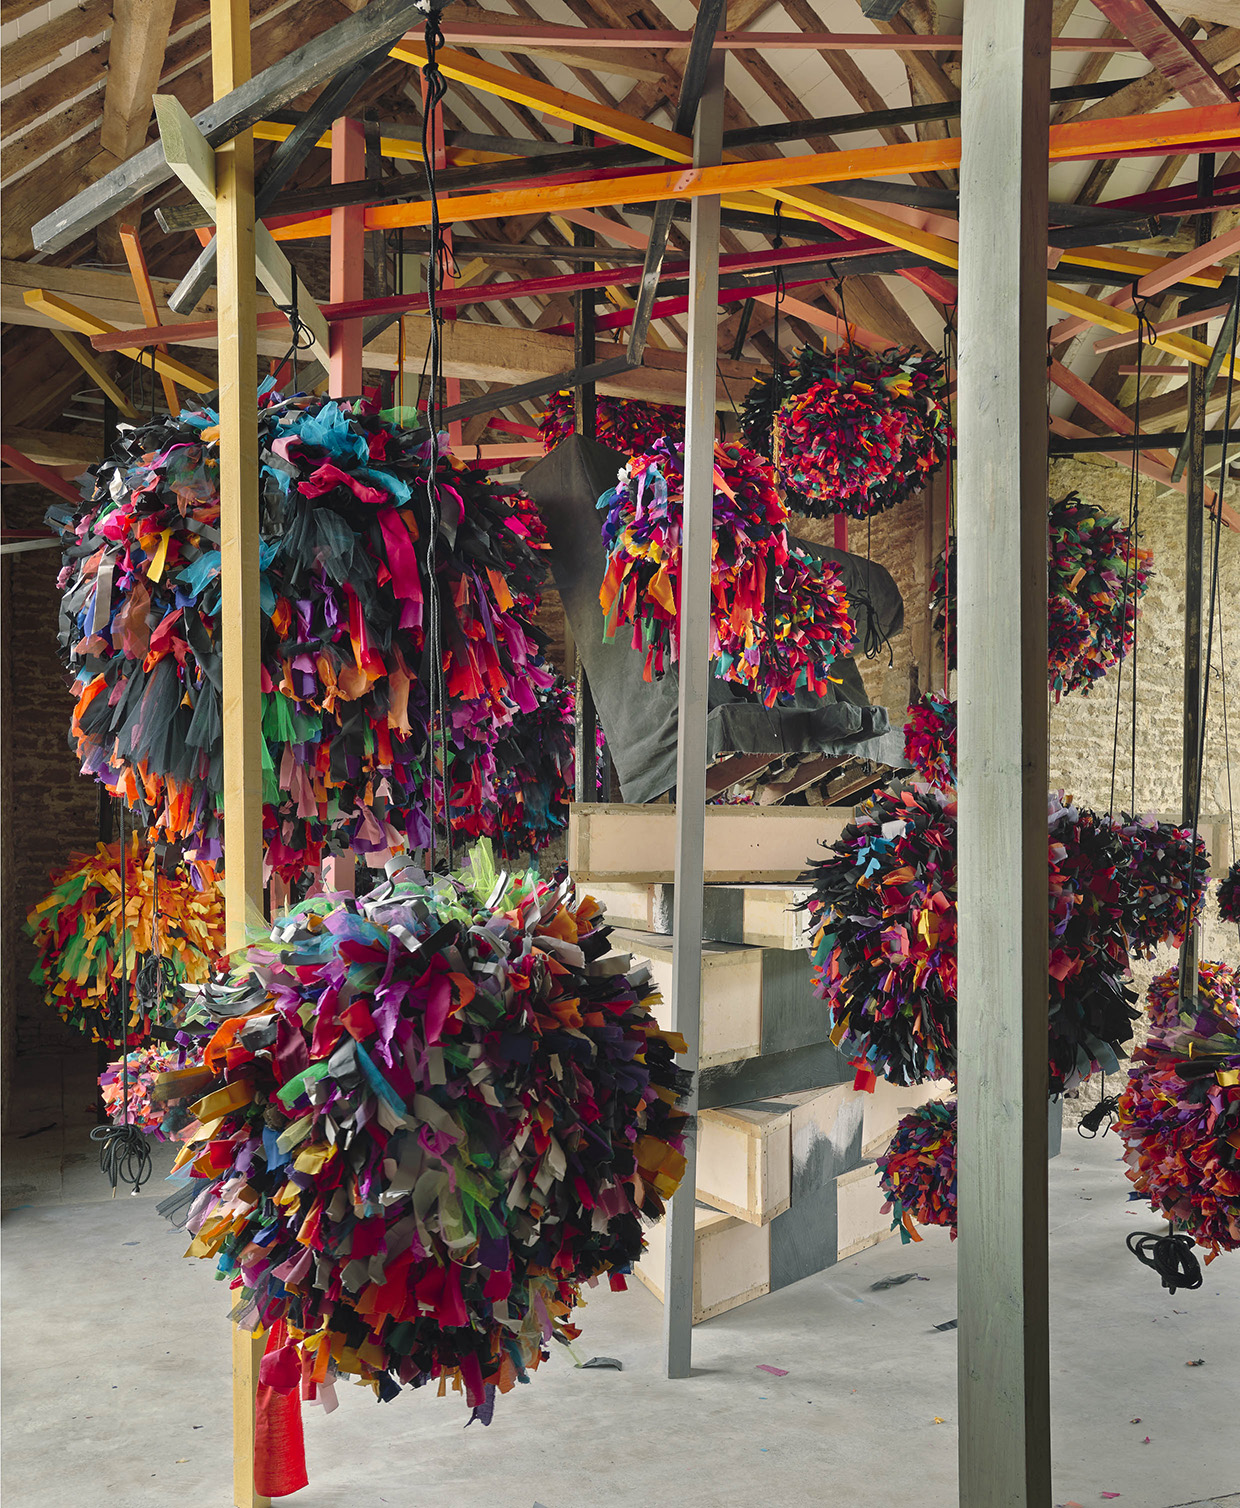 untitled: GIG  (detail), 2014, Phyllida Barlow, fabric, paper, cord, timber, paint. Installation view,  GIG , Hauser & Wirth Somerset, 2014. Photo: Alex Delfanne © Phyllida Barlow. Courtesy the artist and Hauser & Wirth